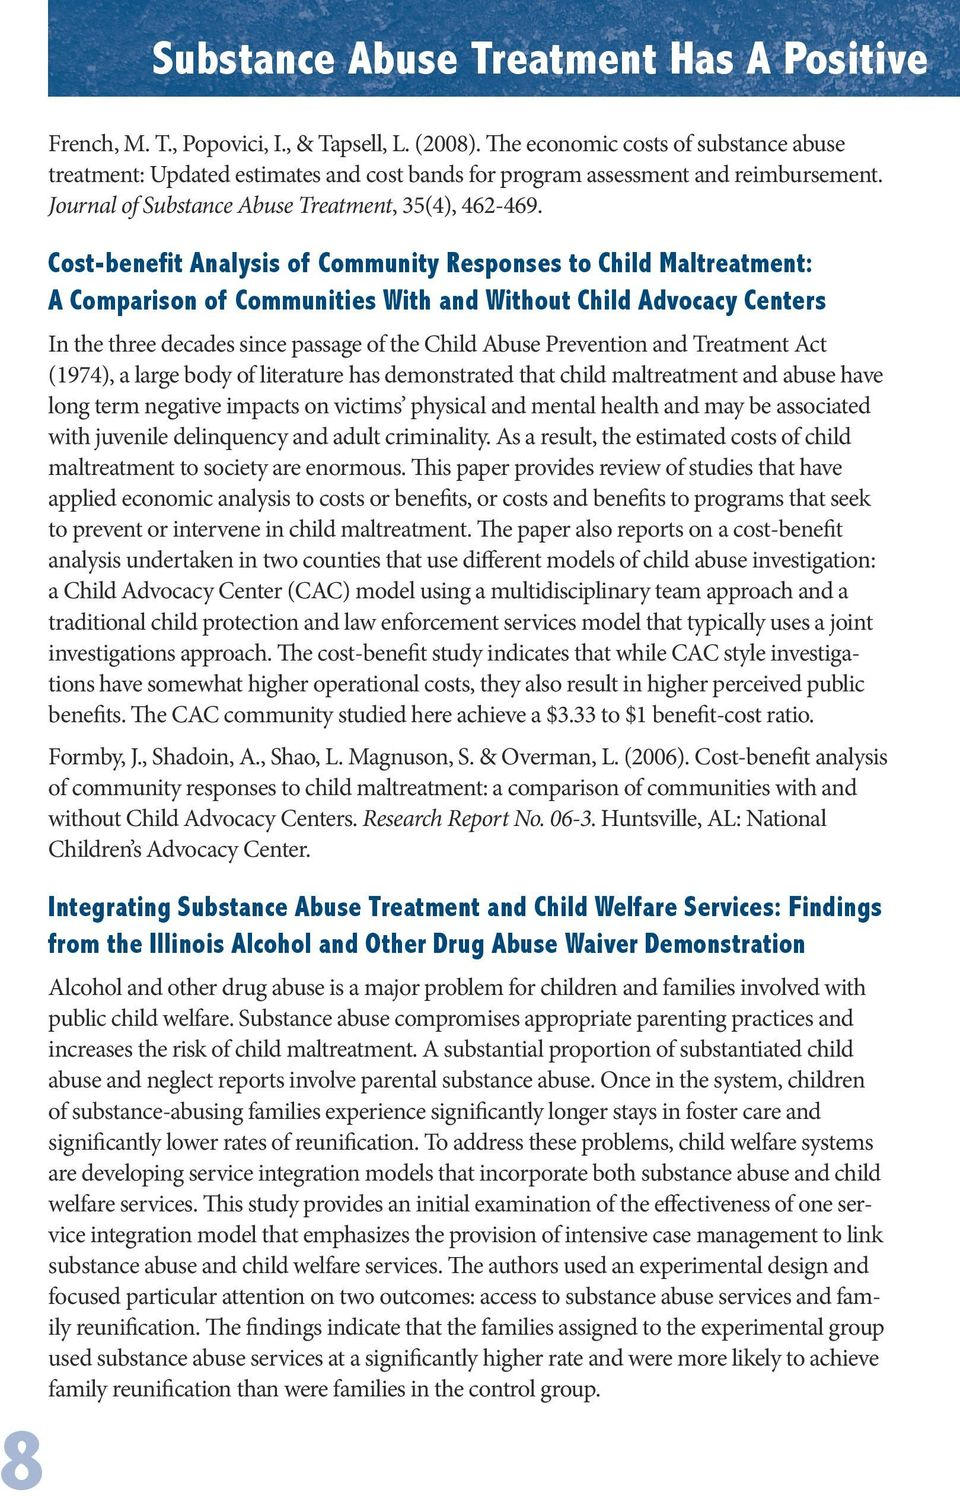 Cost-benefit Analysis of Community Responses to Child Maltreatment: A Comparison of Communities With and Without Child Advocacy Centers In the three decades since passage of the Child Abuse